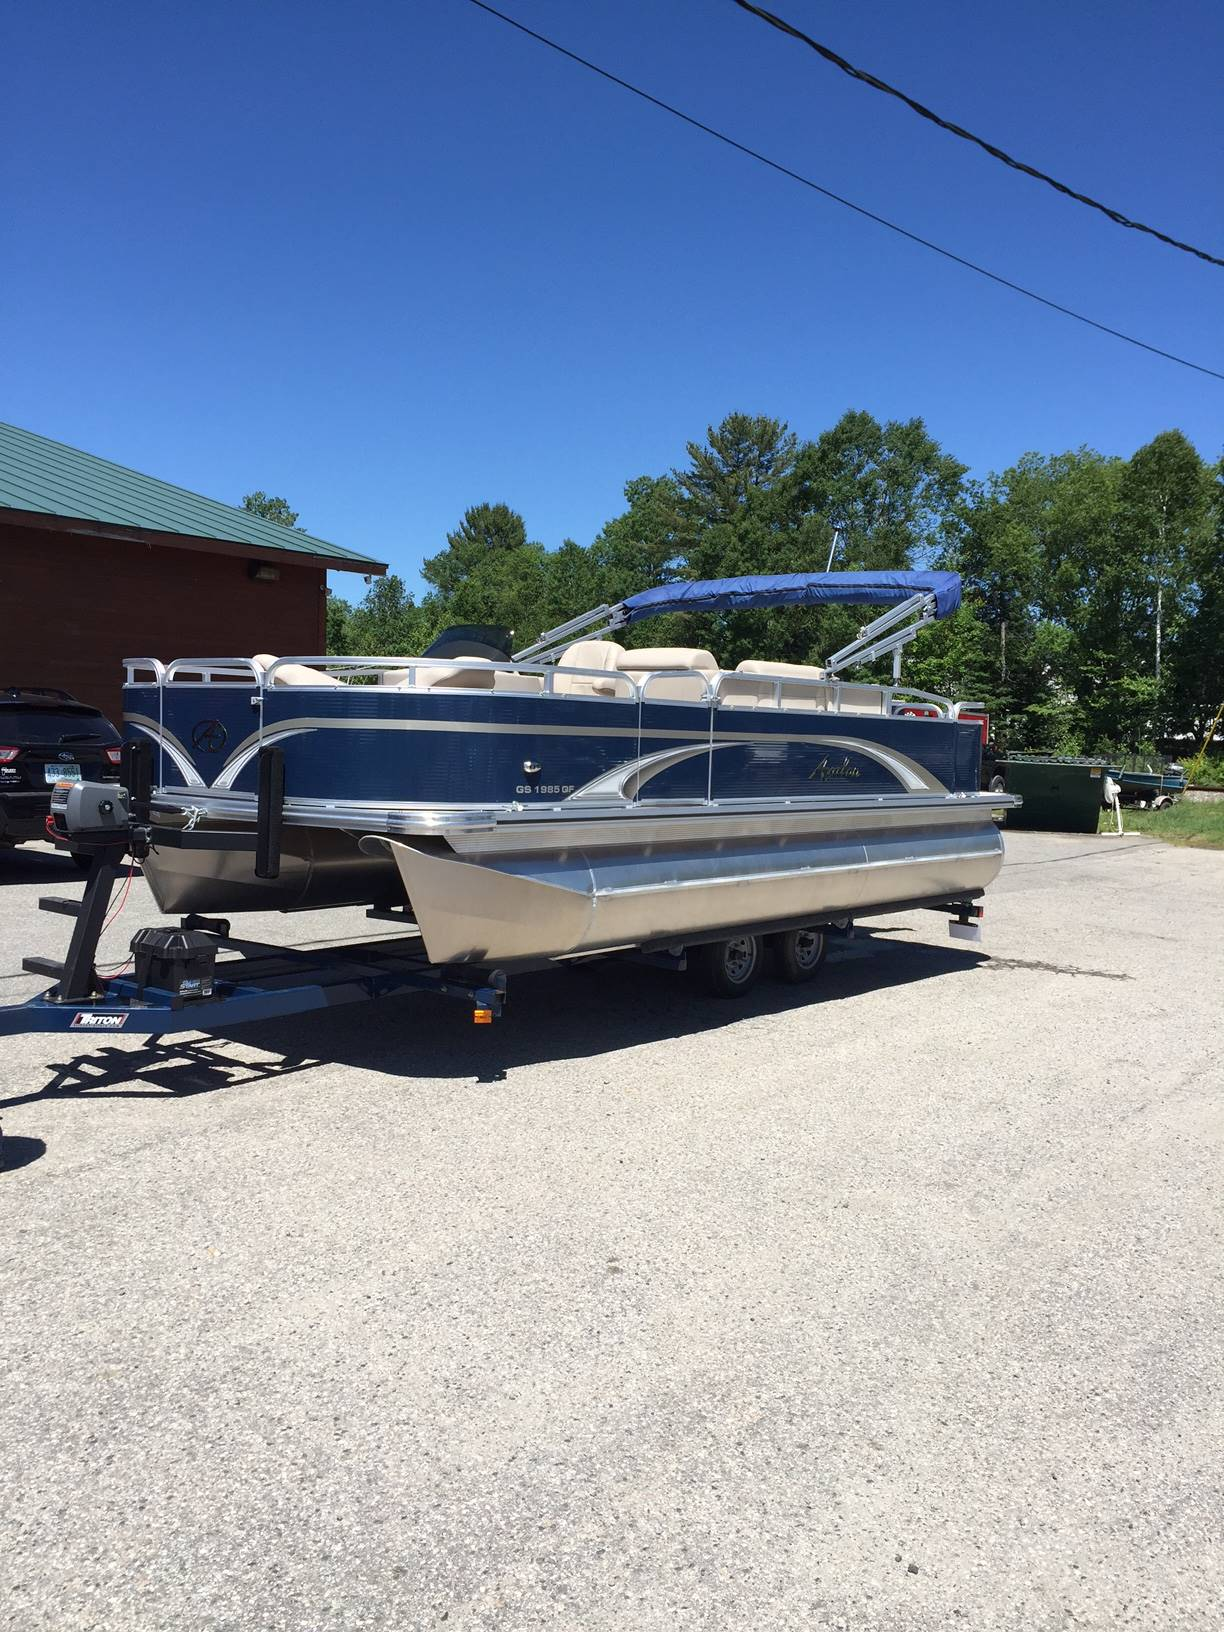 2016 Avalon GS Quad Fish 19 in Lancaster, New Hampshire - Photo 4